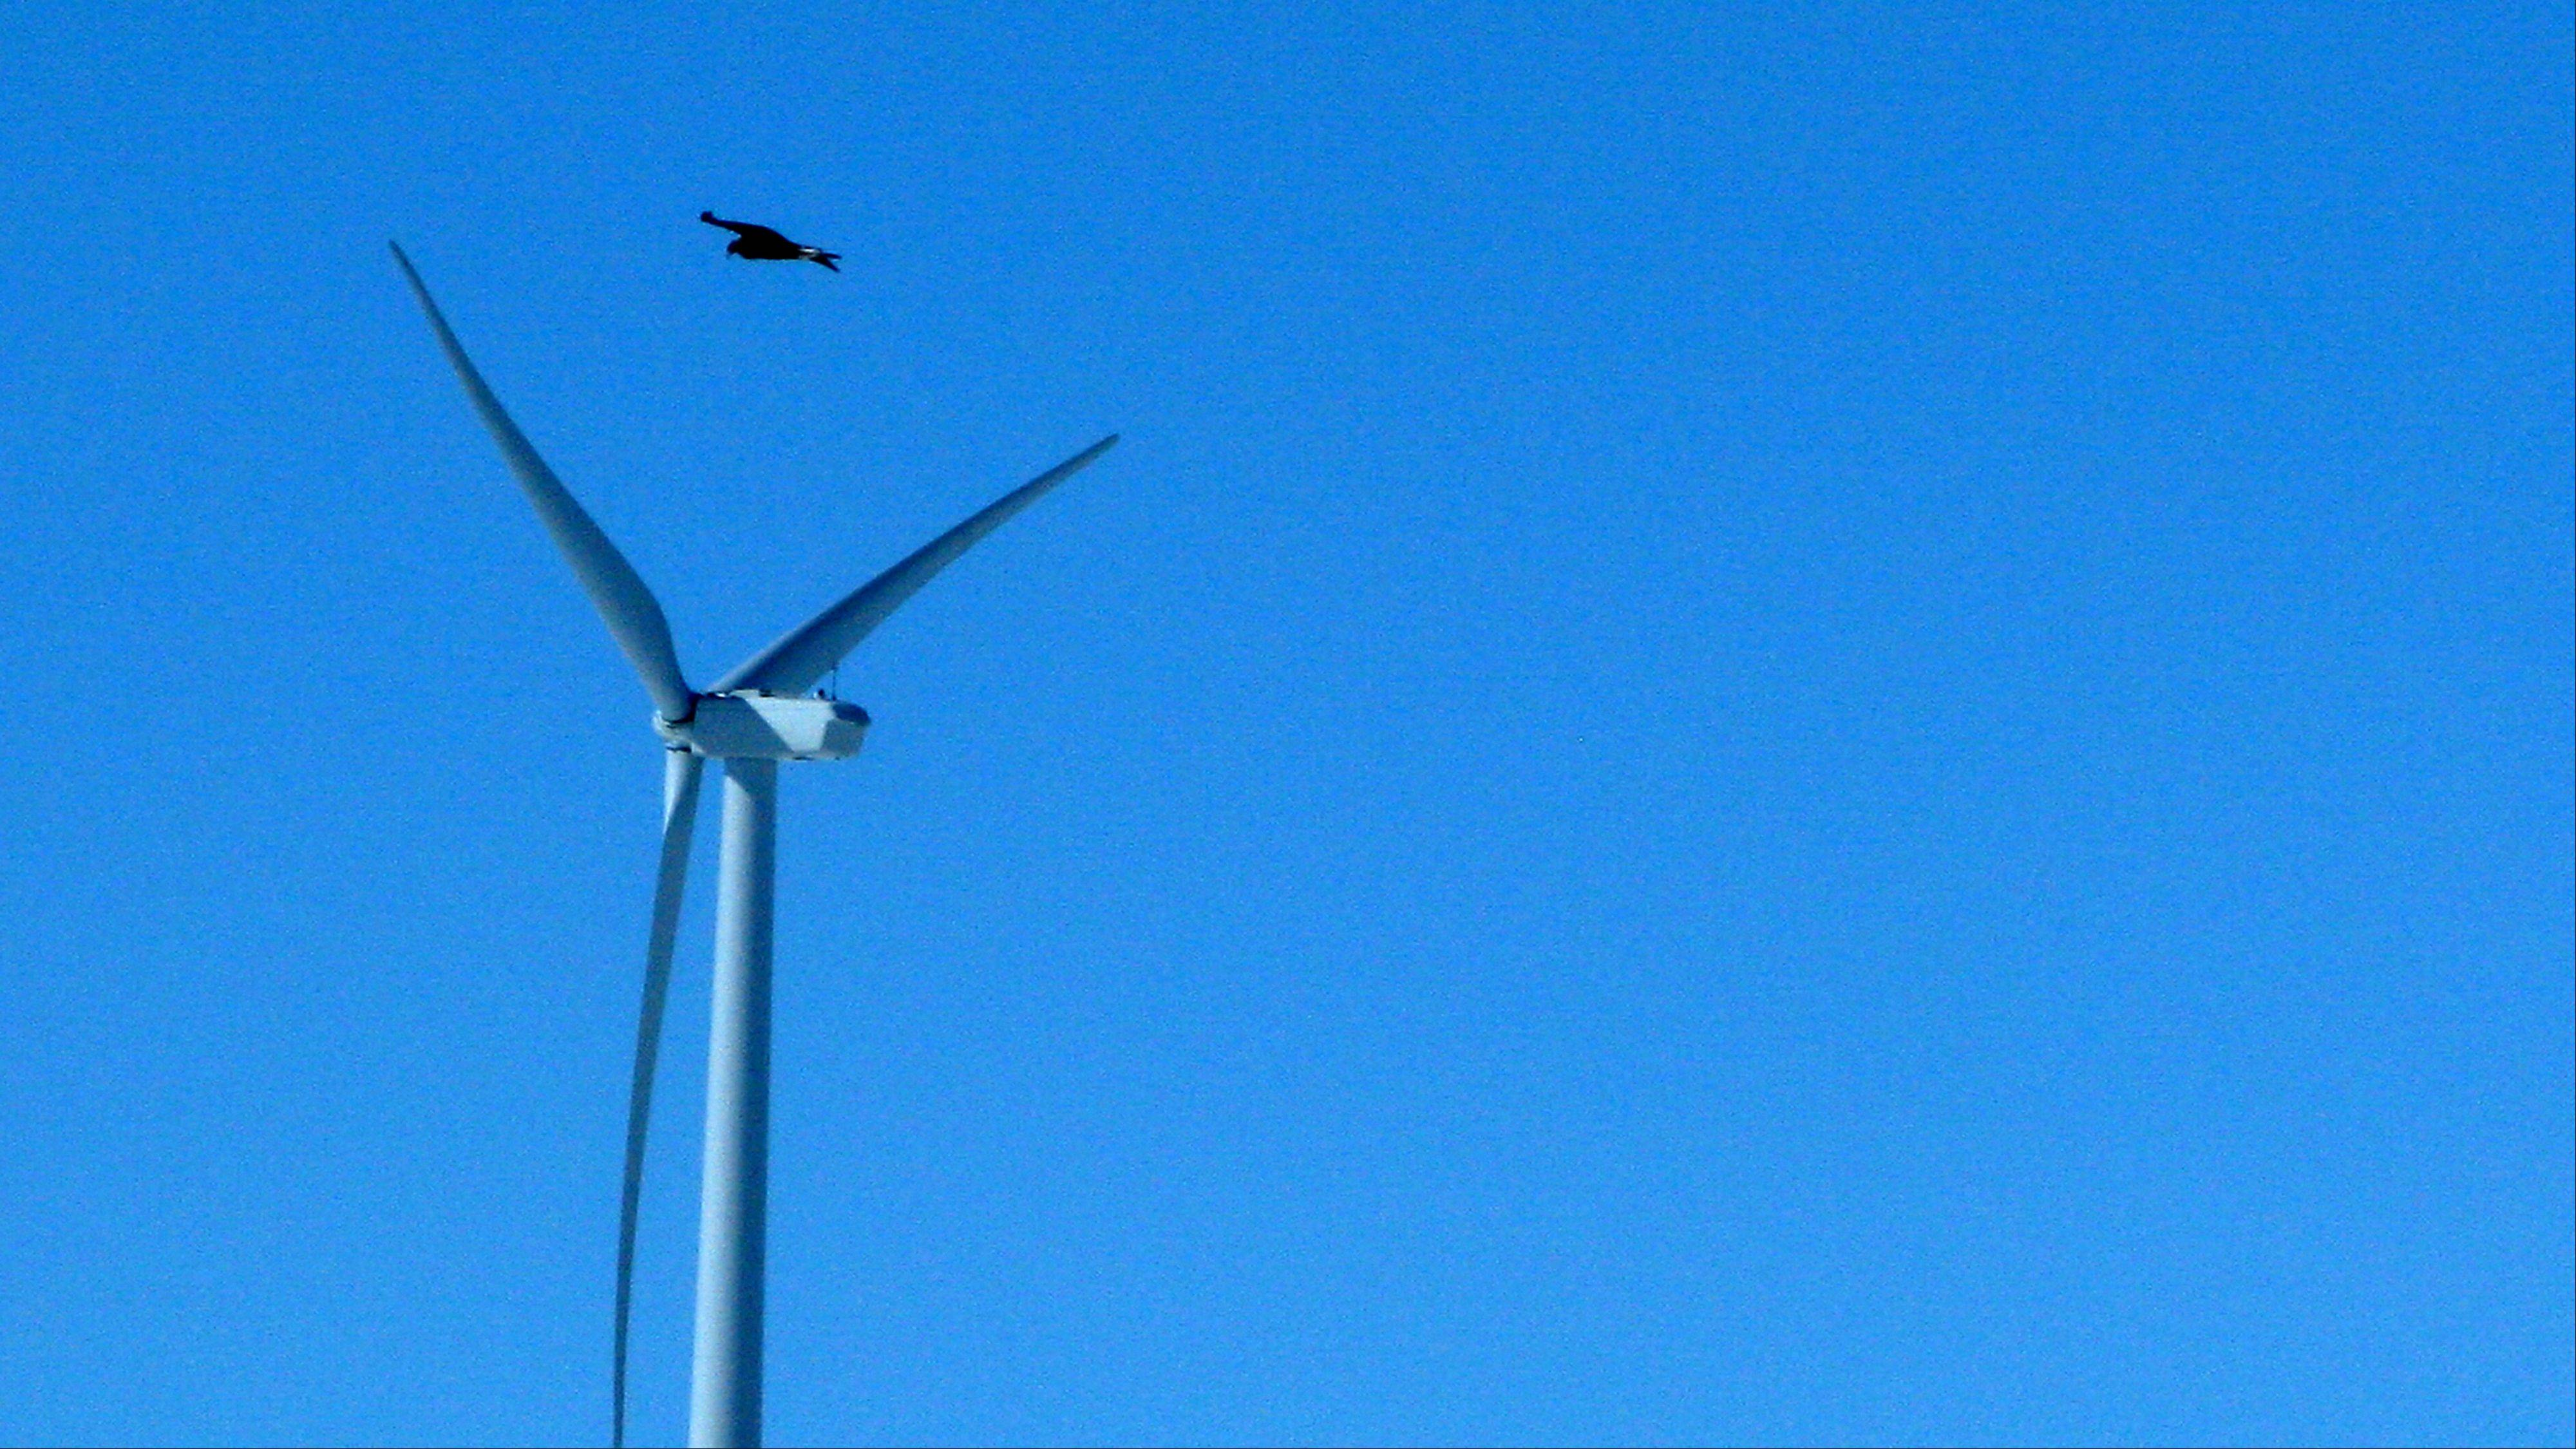 A golden eagle is seen flying over a wind turbine on Duke energy's top of the world wind farm in Converse County Wyo. The company has reported 10 golden eagle deaths since it started operation in 2009. It's the not-so-green secret of the nation's wind-energy boom: Spinning turbines are killing thousands of federally protected birds, including eagles, each year.